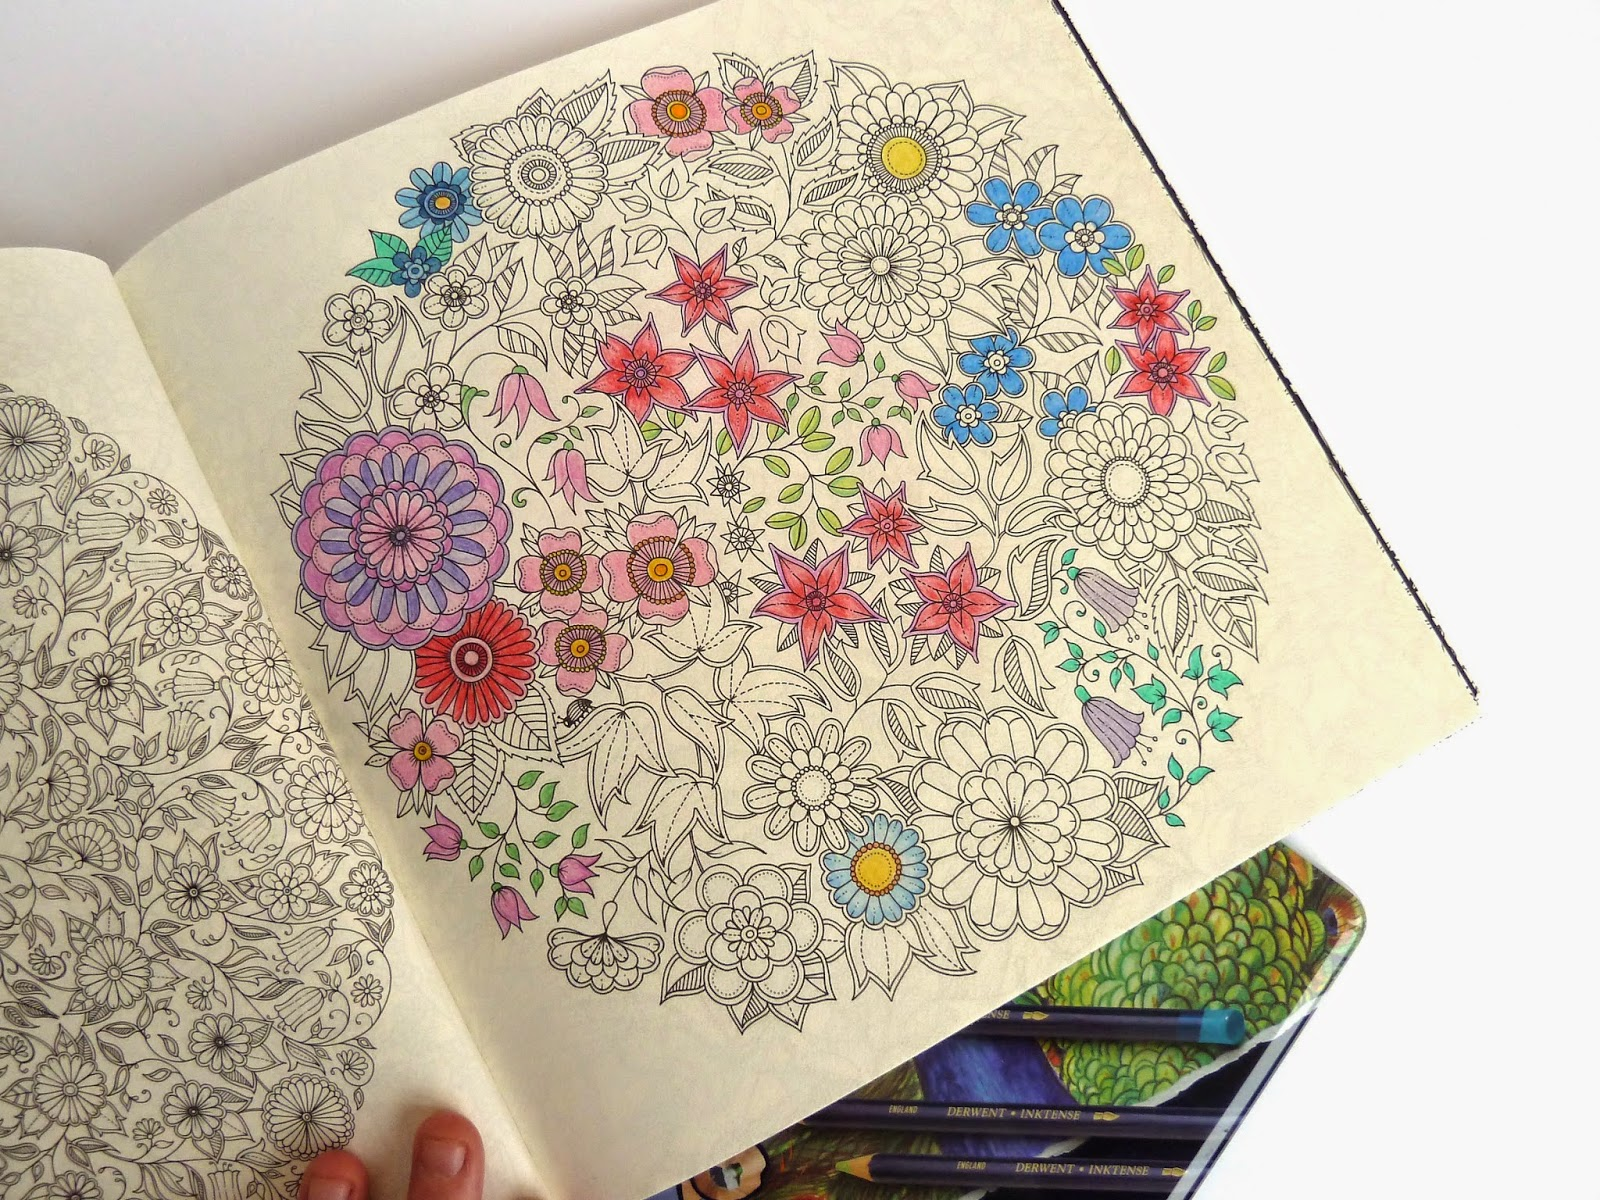 Nordic Craft A Coloring Book For Grown Ups Secret Garden Review